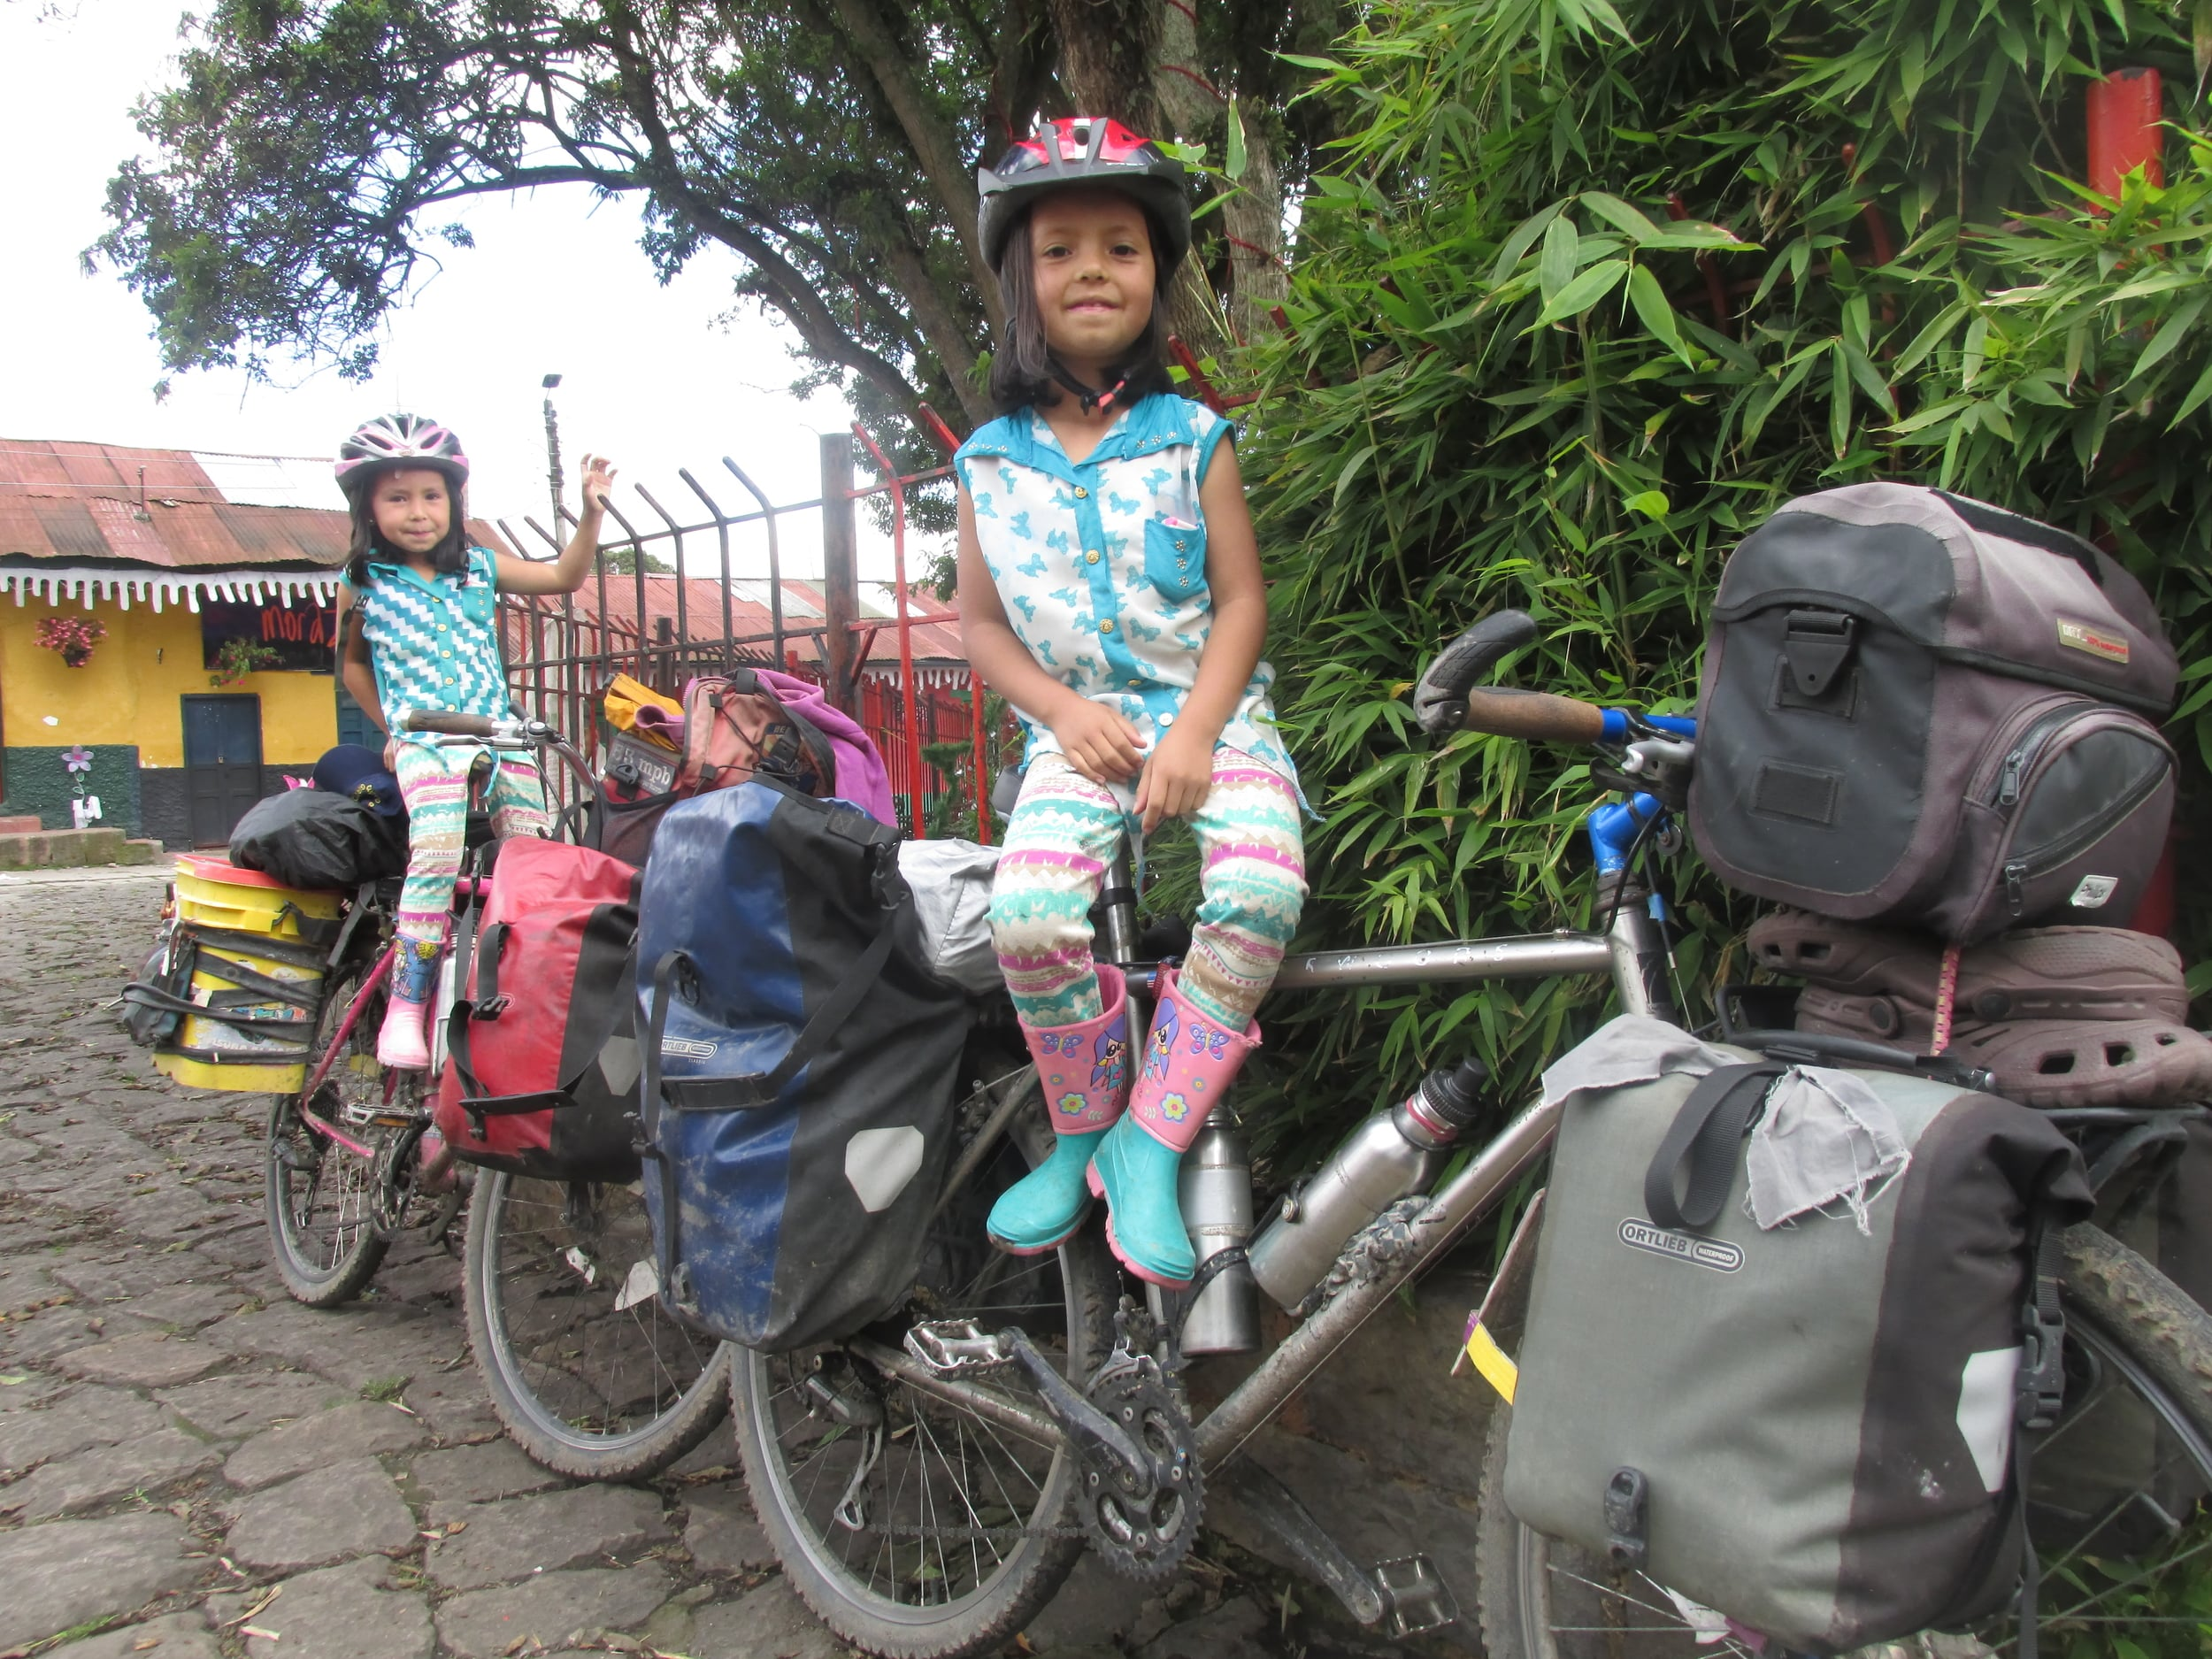 Don Jose and his family invited to their house for Christmas. His grandaughters Naailia and Valantina love the bikes.